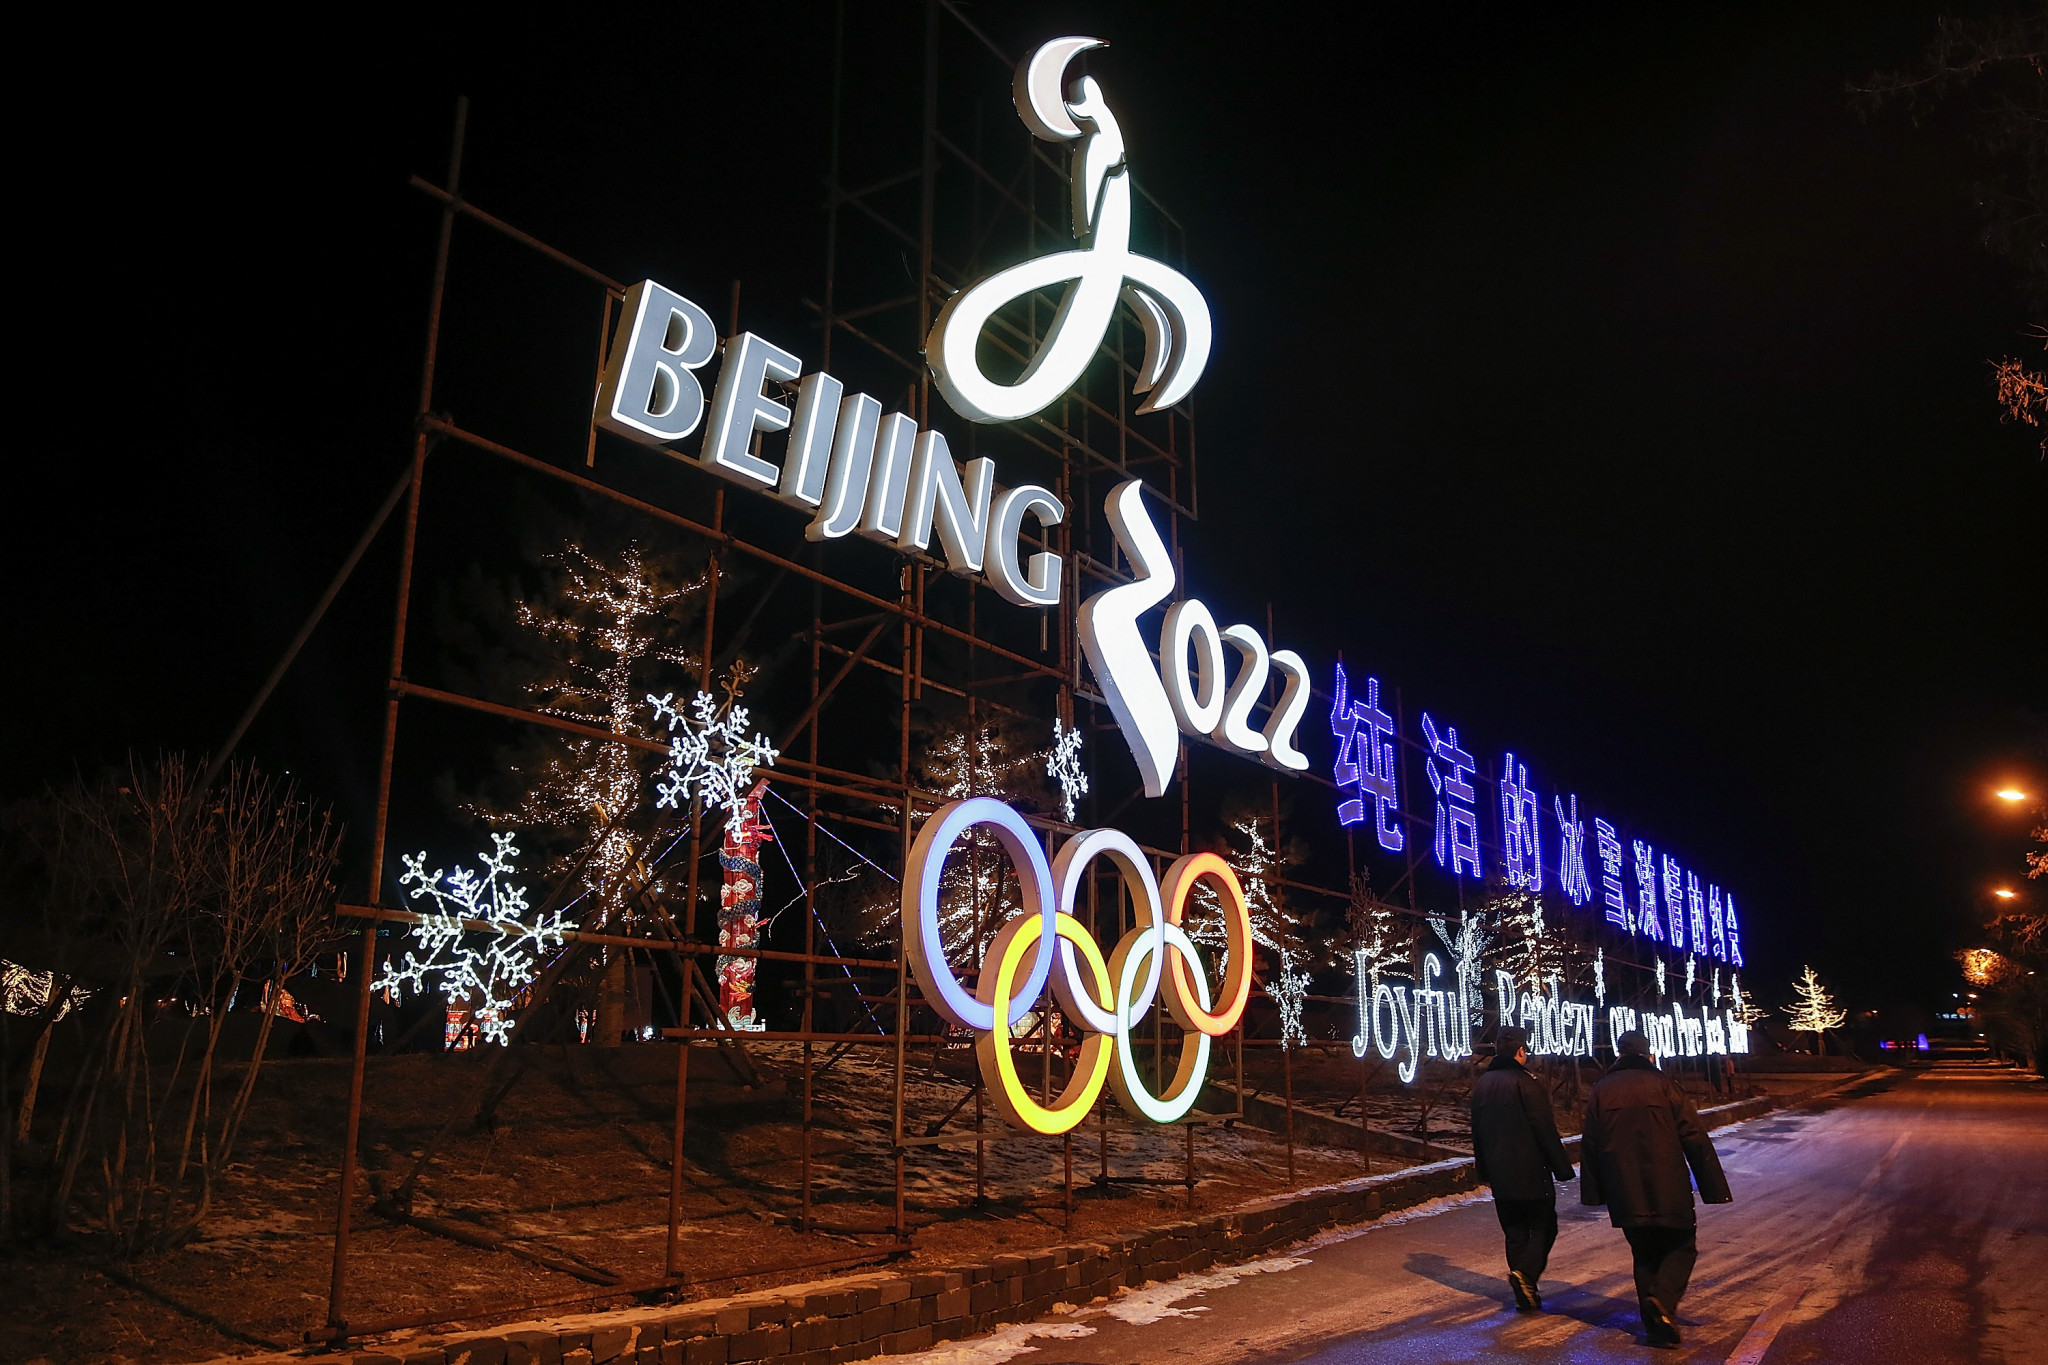 The Japanese Olympic Committee cancelled a Beijing 2022 visit due to the coronavirus outbreak ©Getty Images